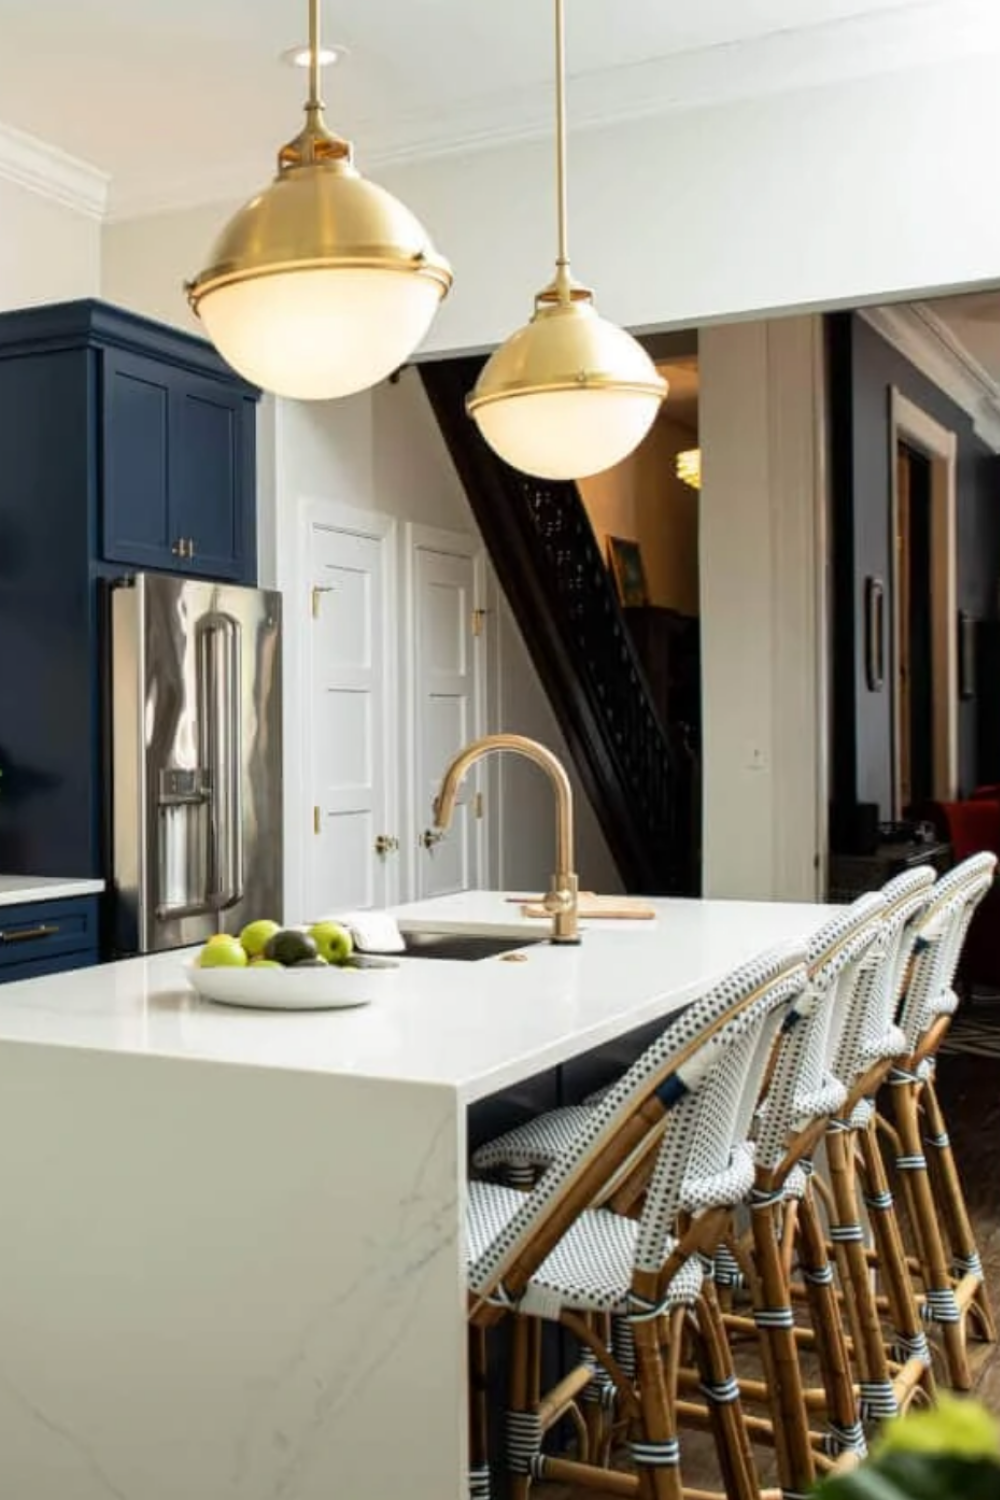 Infinity Island Baltimore Kitchens In 2020 Fine Home Building Kitchen Cabinet Trends Kitchen Remodel